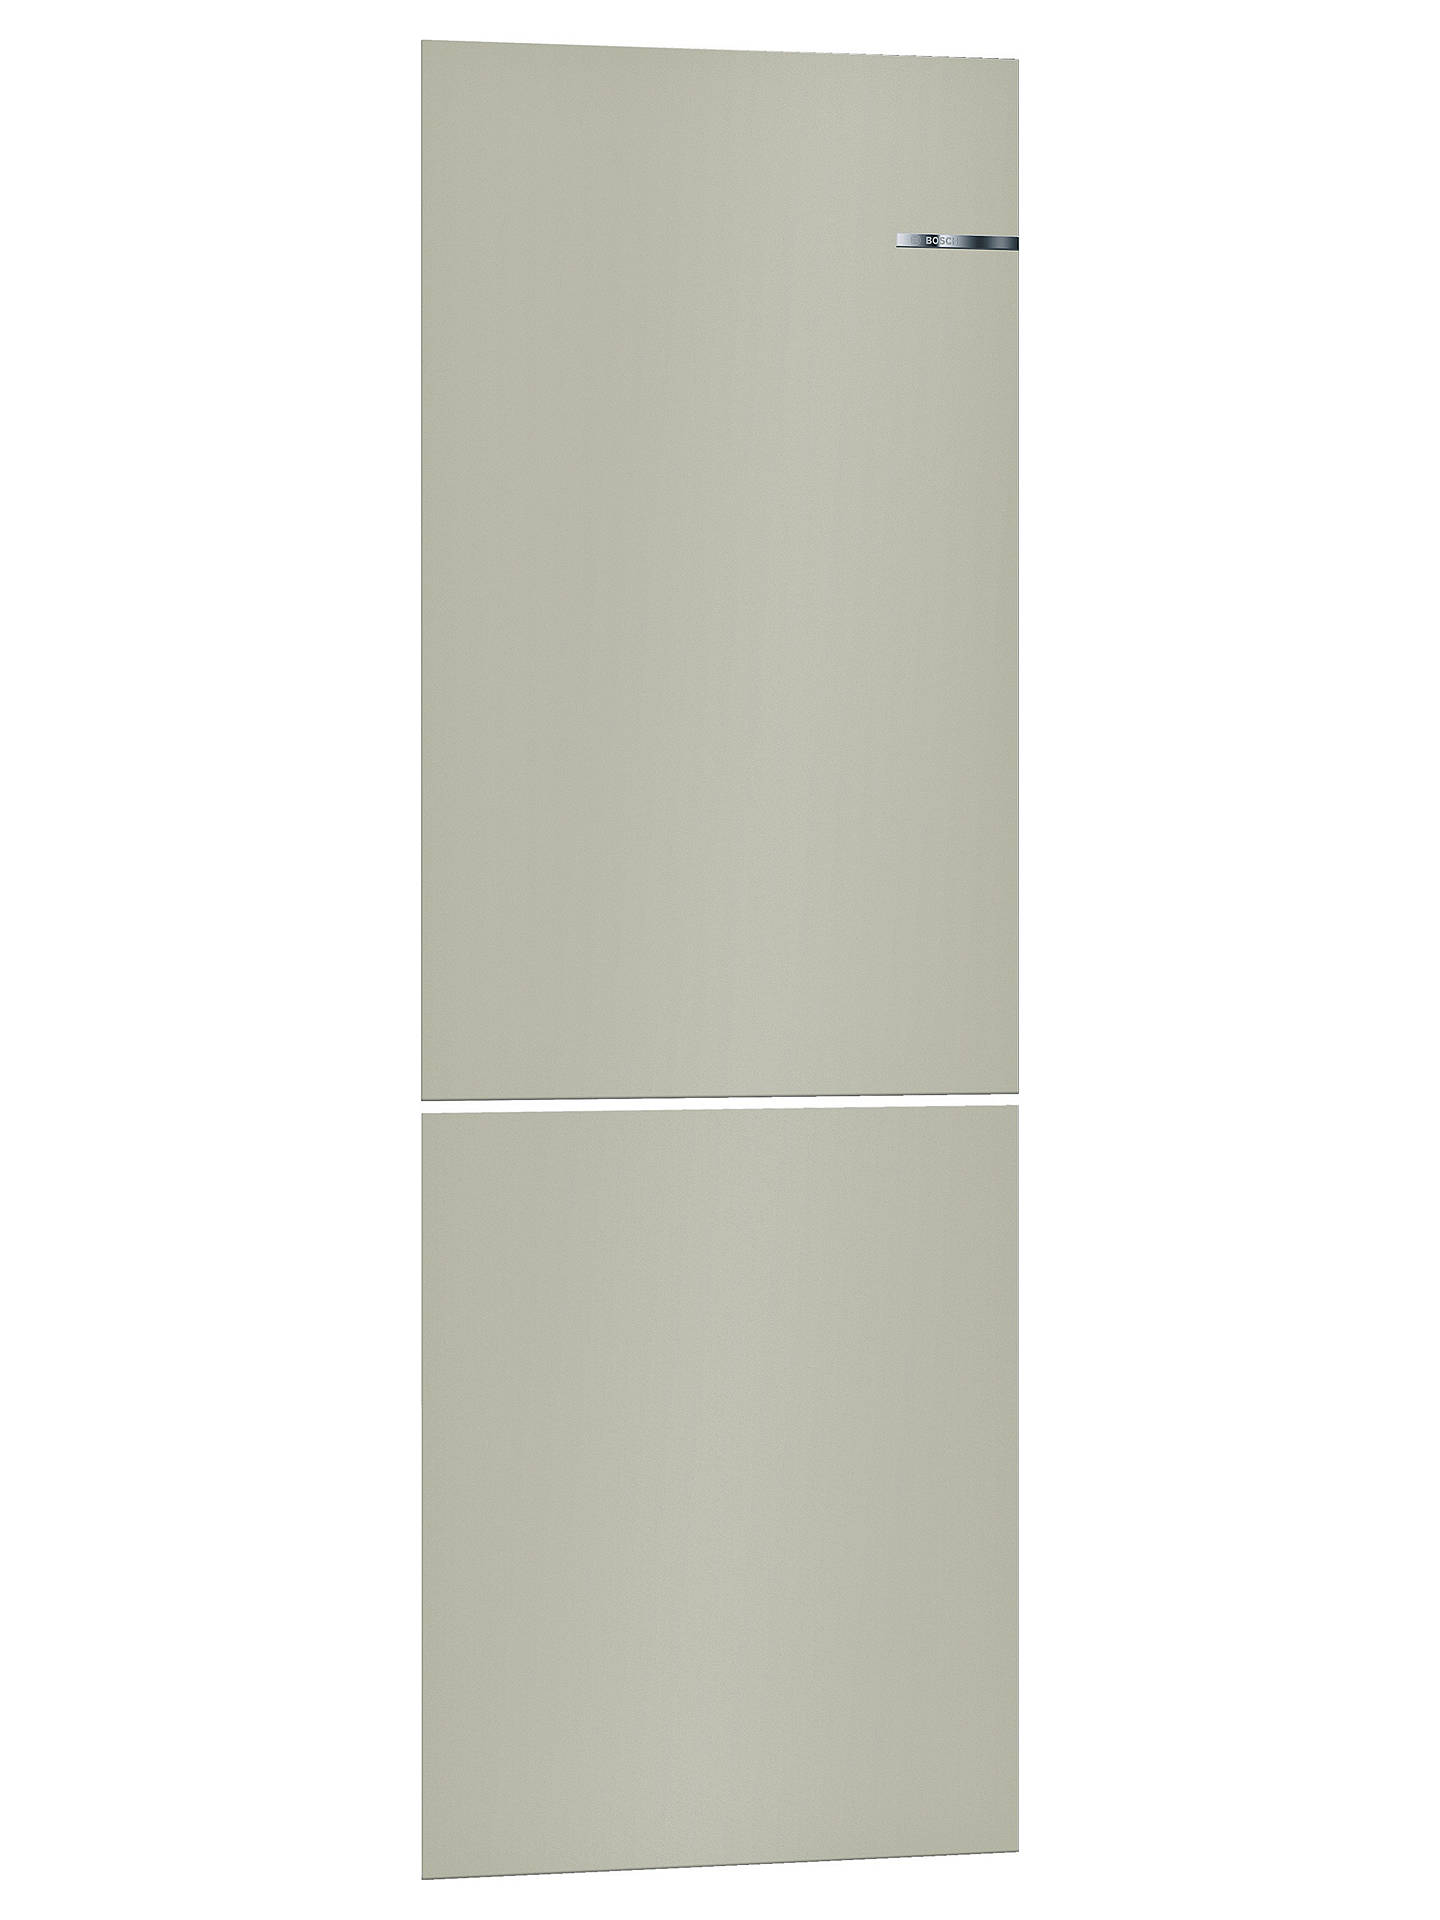 BuyBosch KSZ1AVK00 Vario Style Exchangeable Colour Door Front, Neutral Online at johnlewis.com